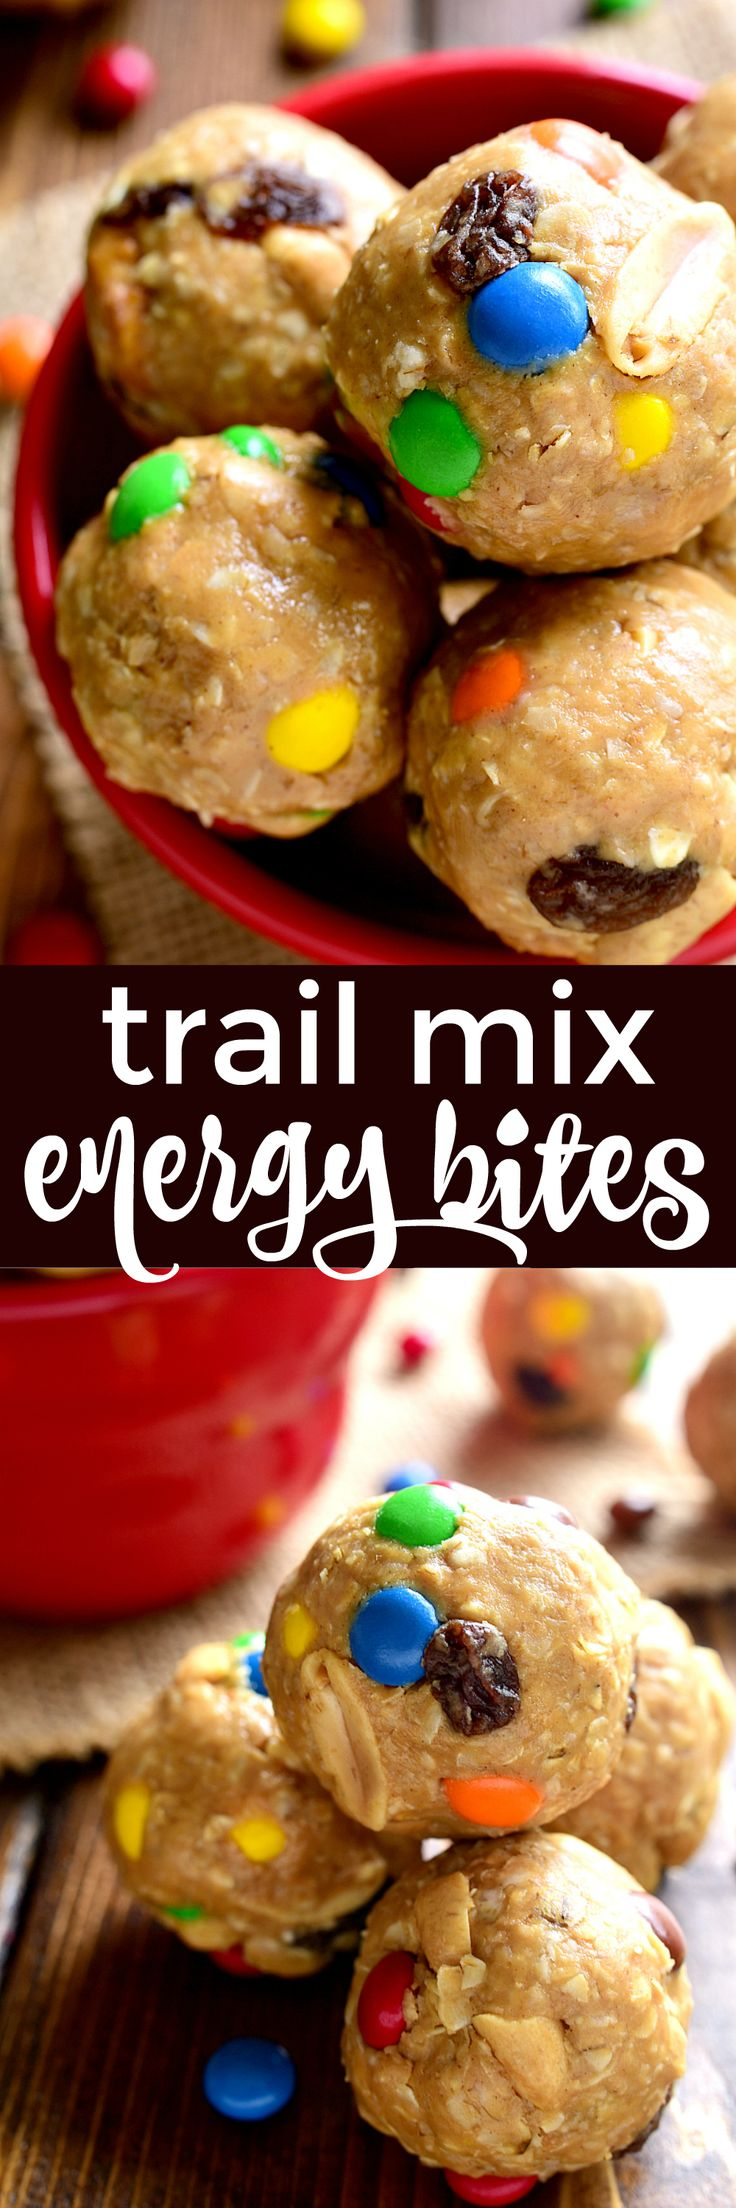 These Trail Mix Energy Bites combine all the flavors of classic trail mix in a delicious energy bite you're sure to LOVE! (I bet you can't eat just one!)